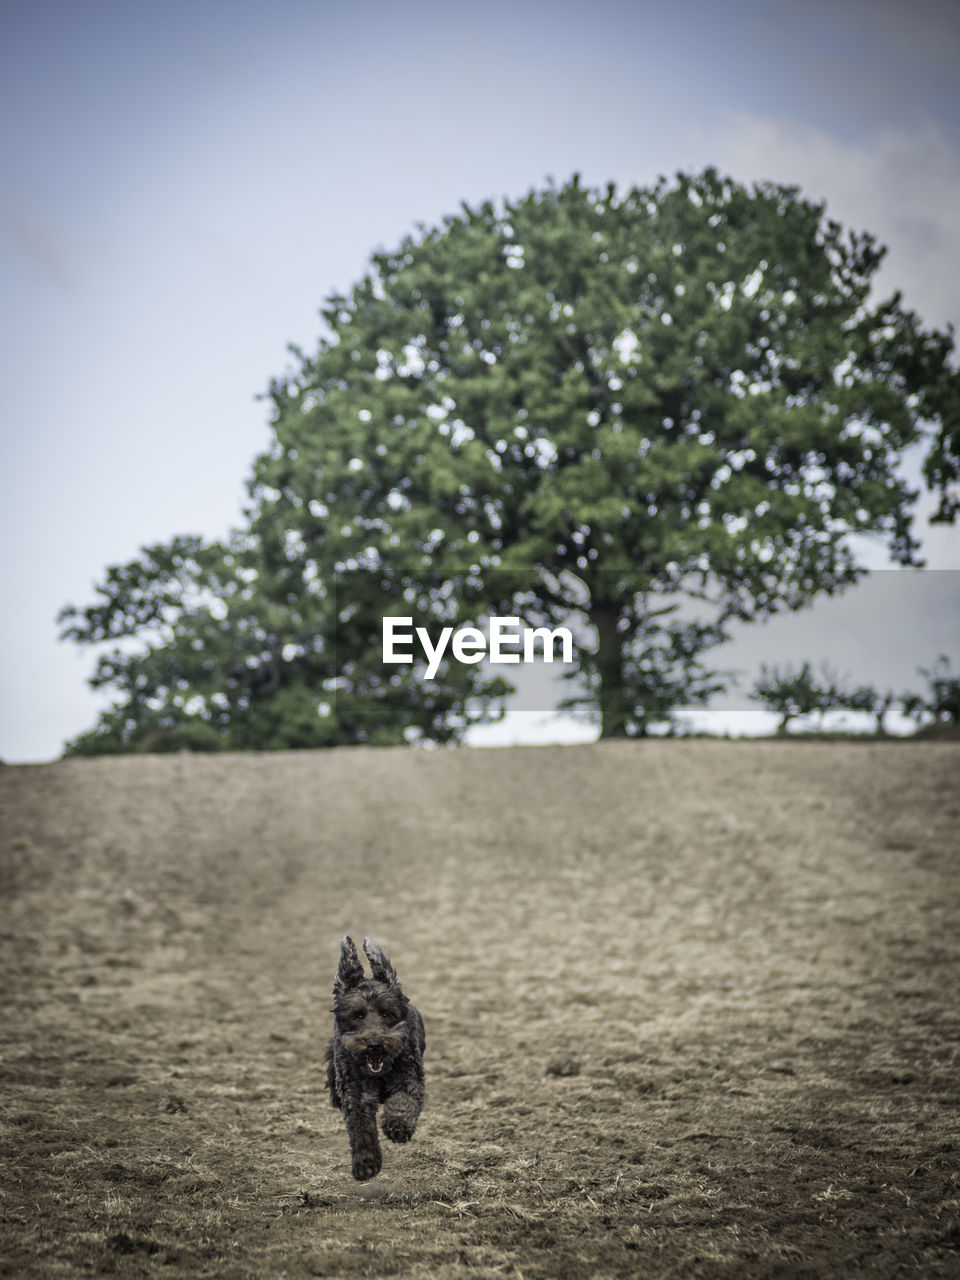 tree, one animal, plant, pets, domestic, domestic animals, animal themes, mammal, animal, sky, vertebrate, nature, field, land, canine, day, dog, no people, focus on foreground, growth, outdoors